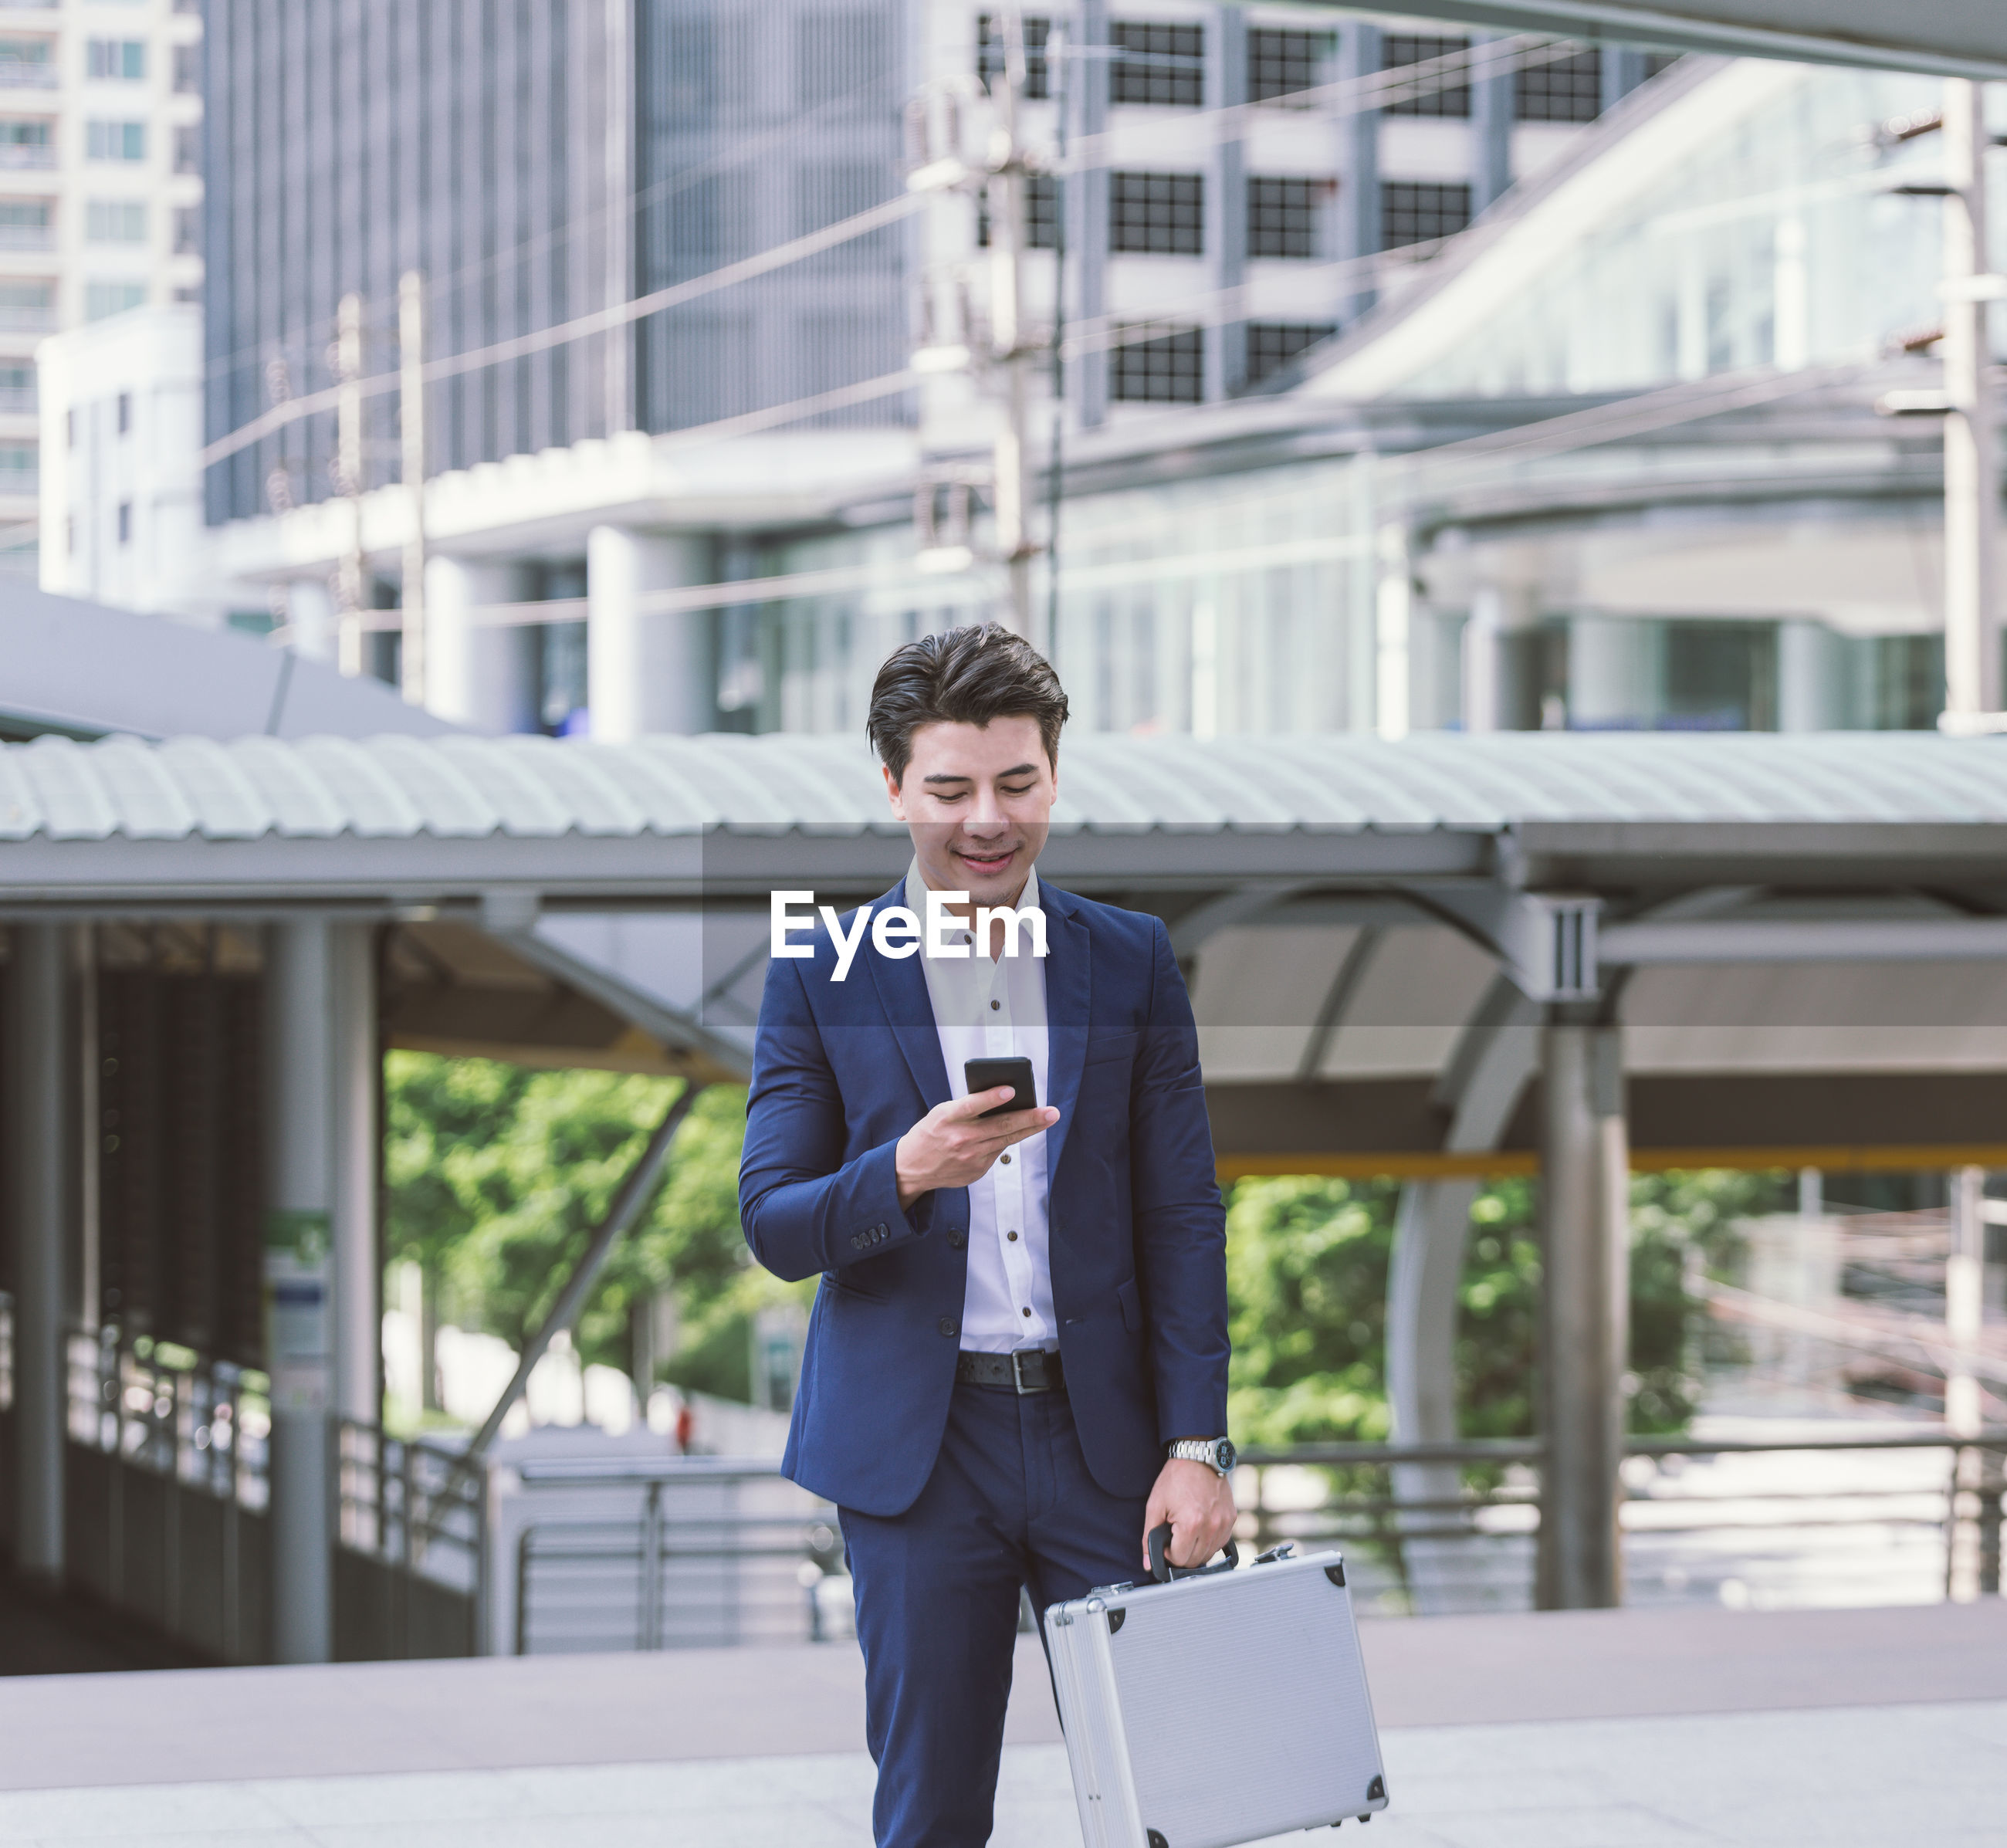 Happy young businessman using phone while standing in city against building